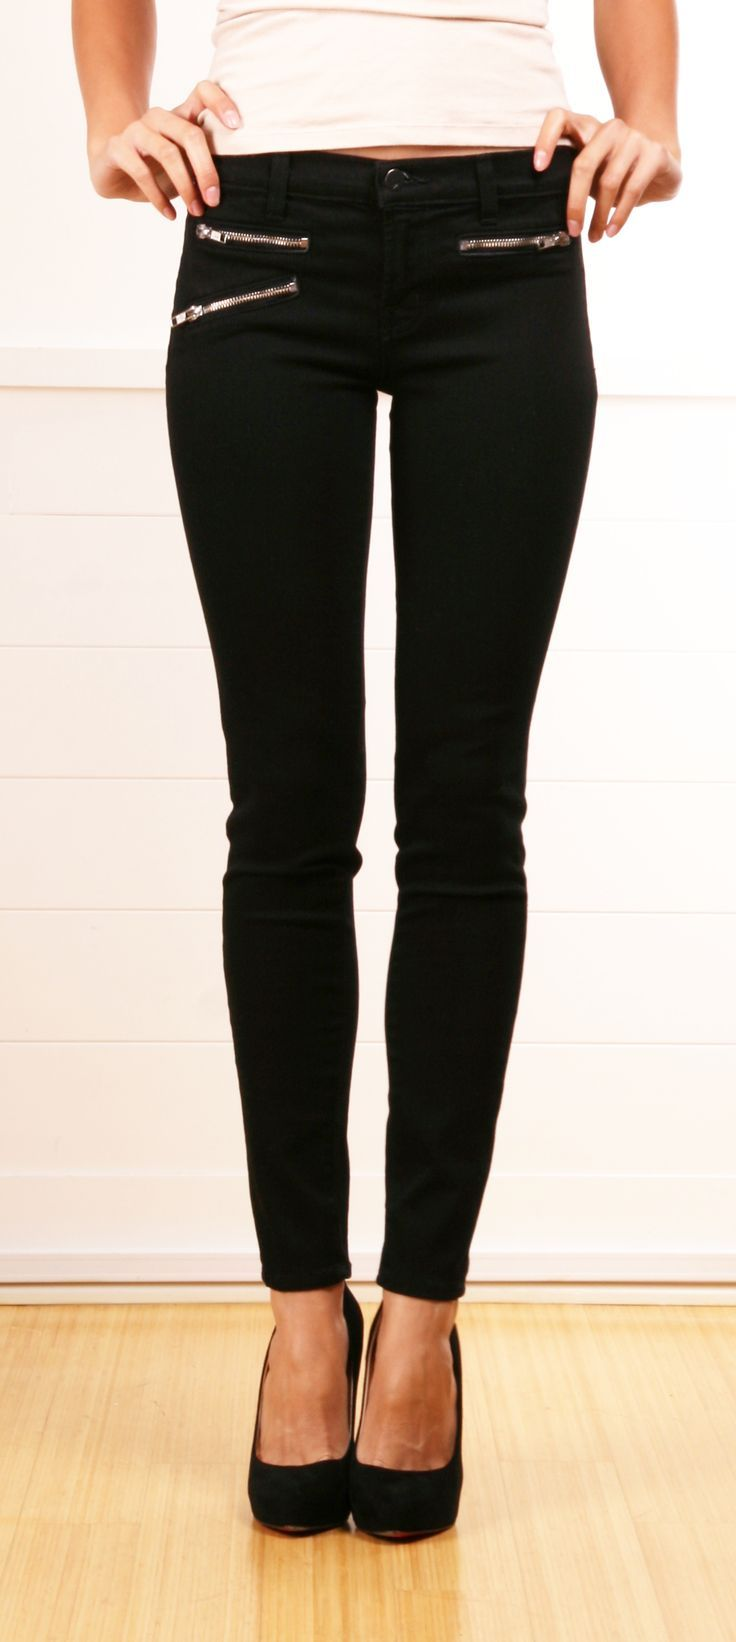 Black Skinny Pants With Zipper Detailing